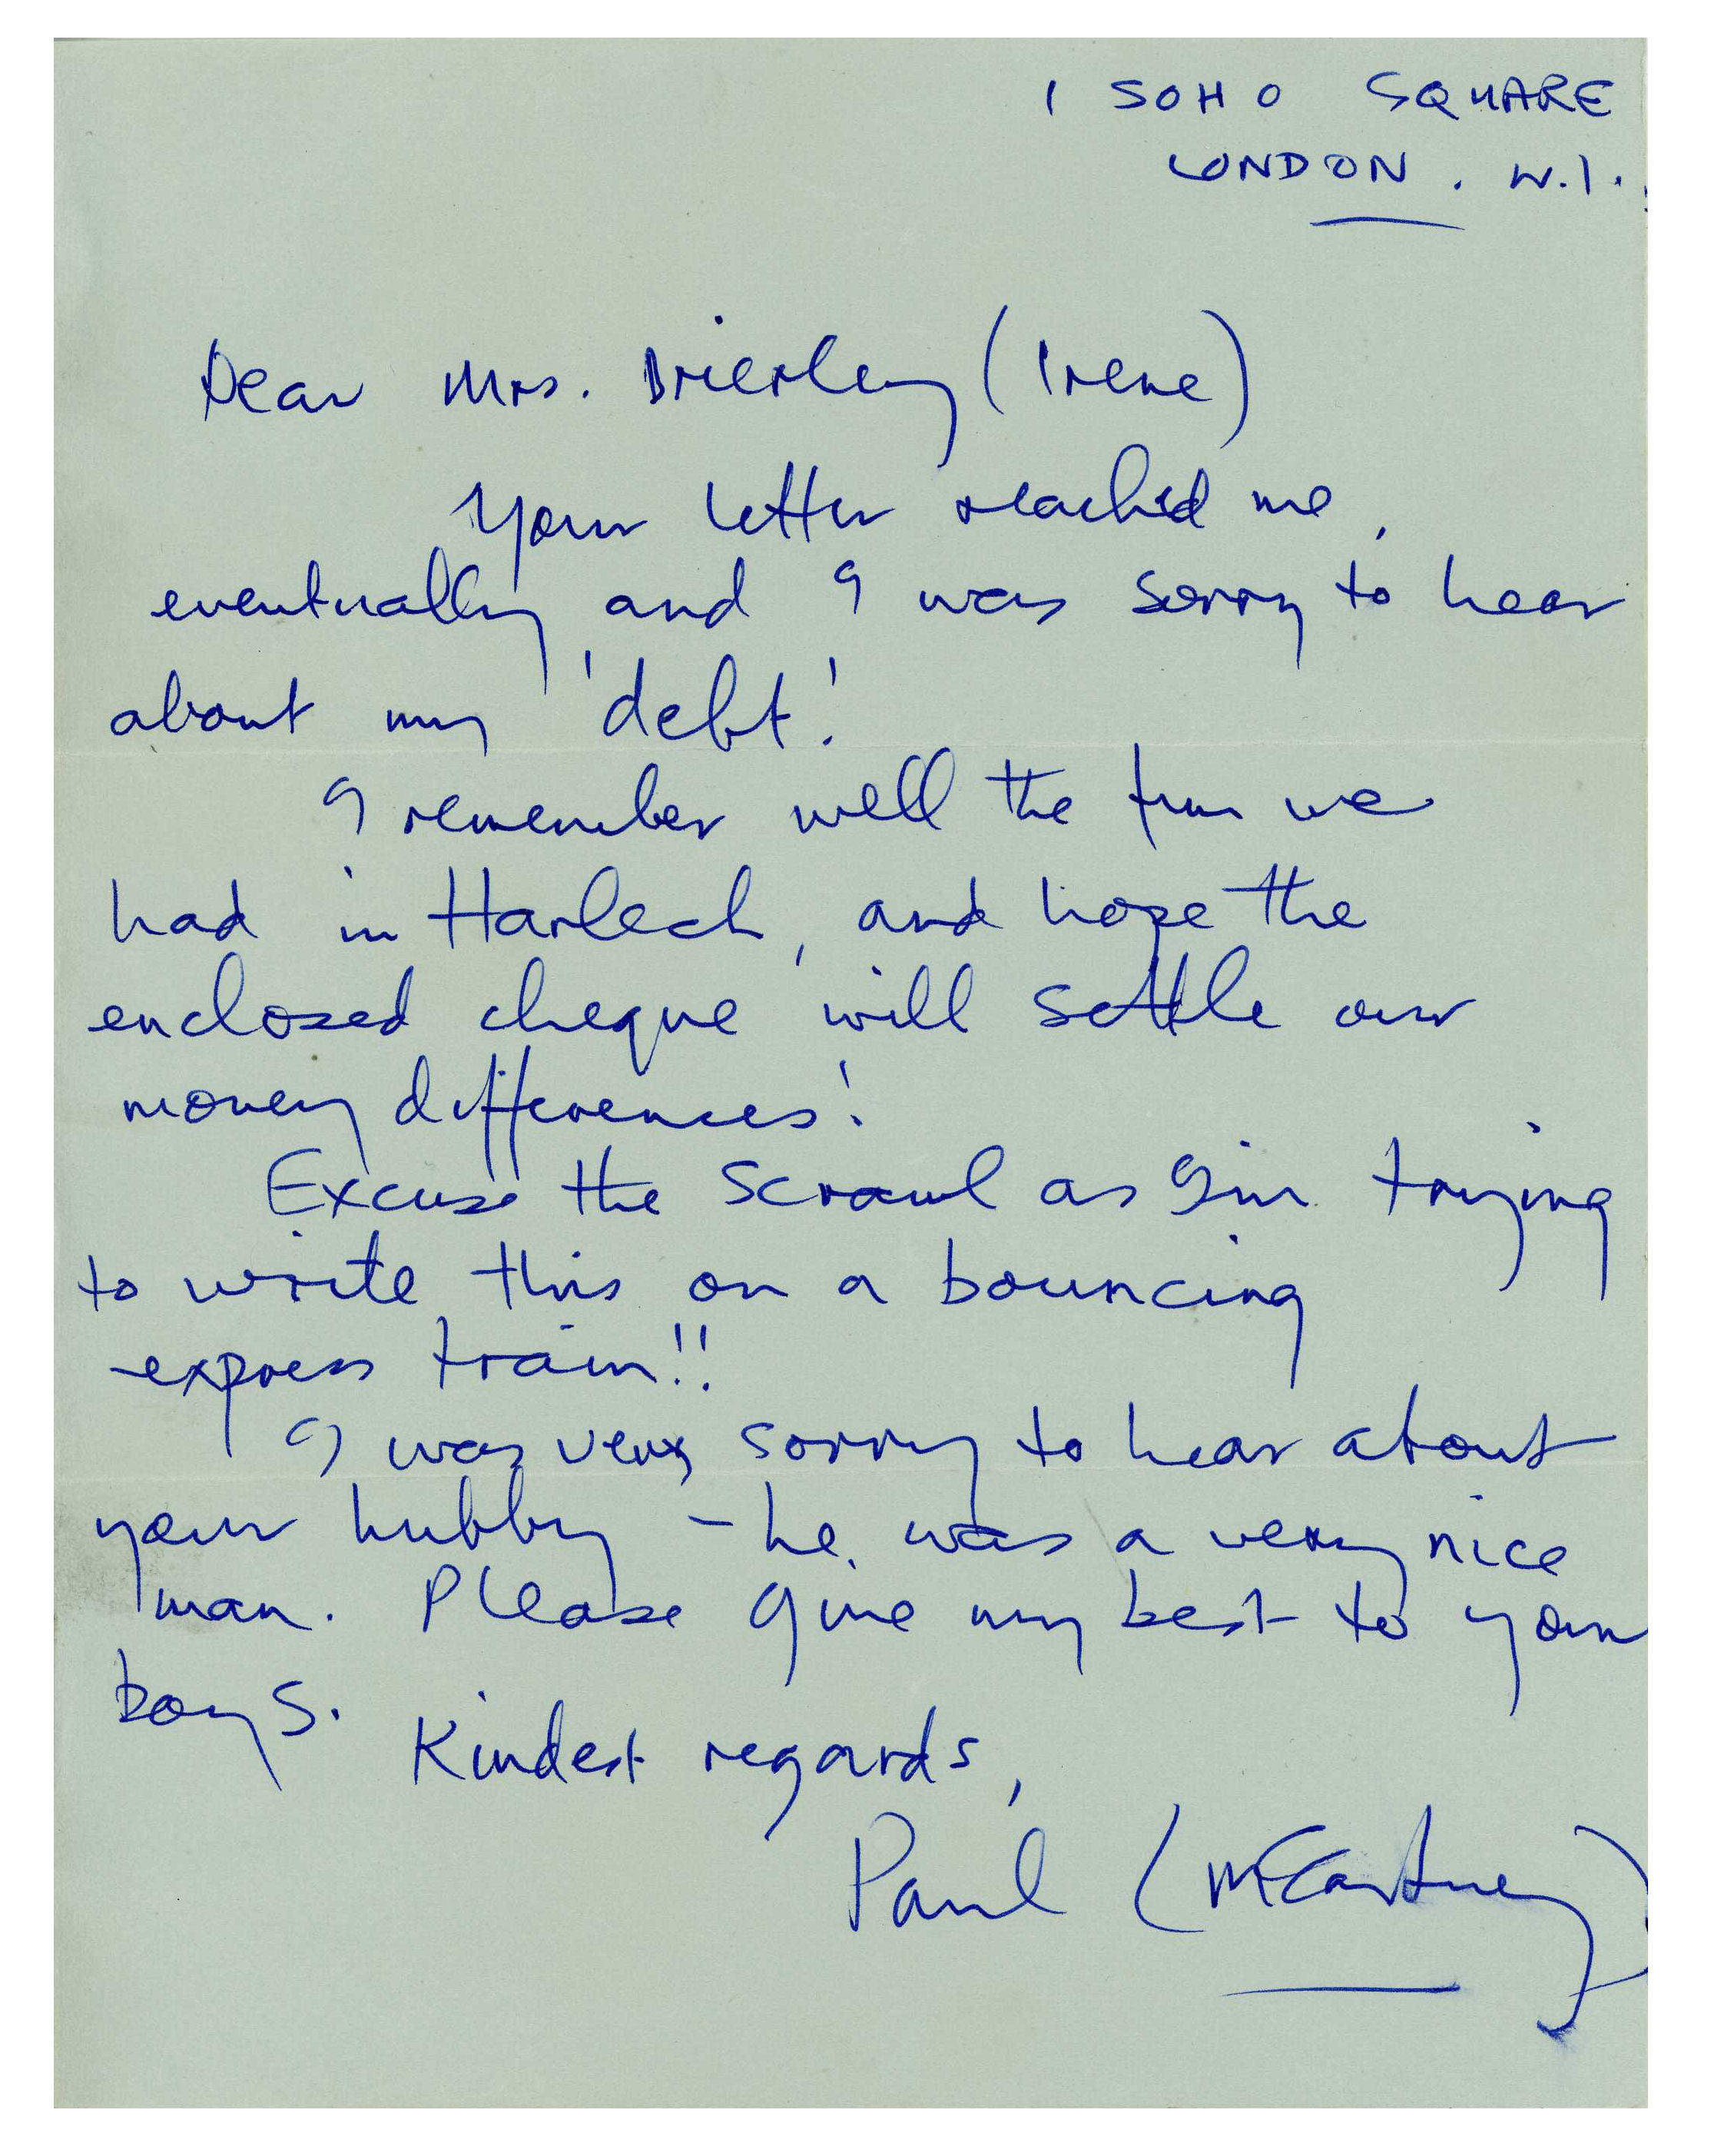 Letter from Paul McCartney to Irene Brierley